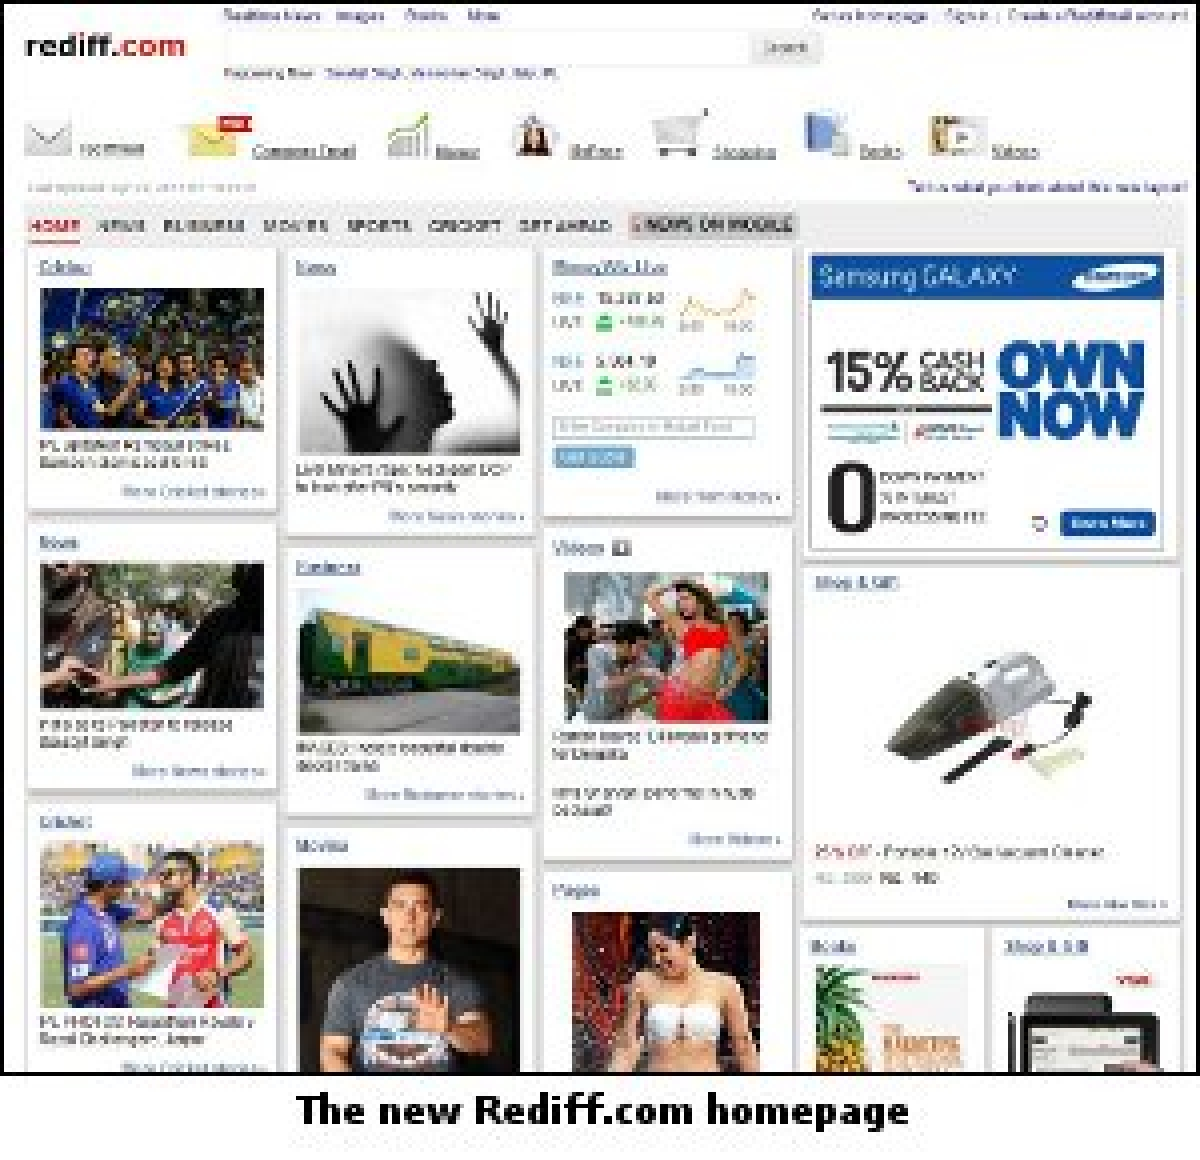 Rediff.com adopts a tiled look